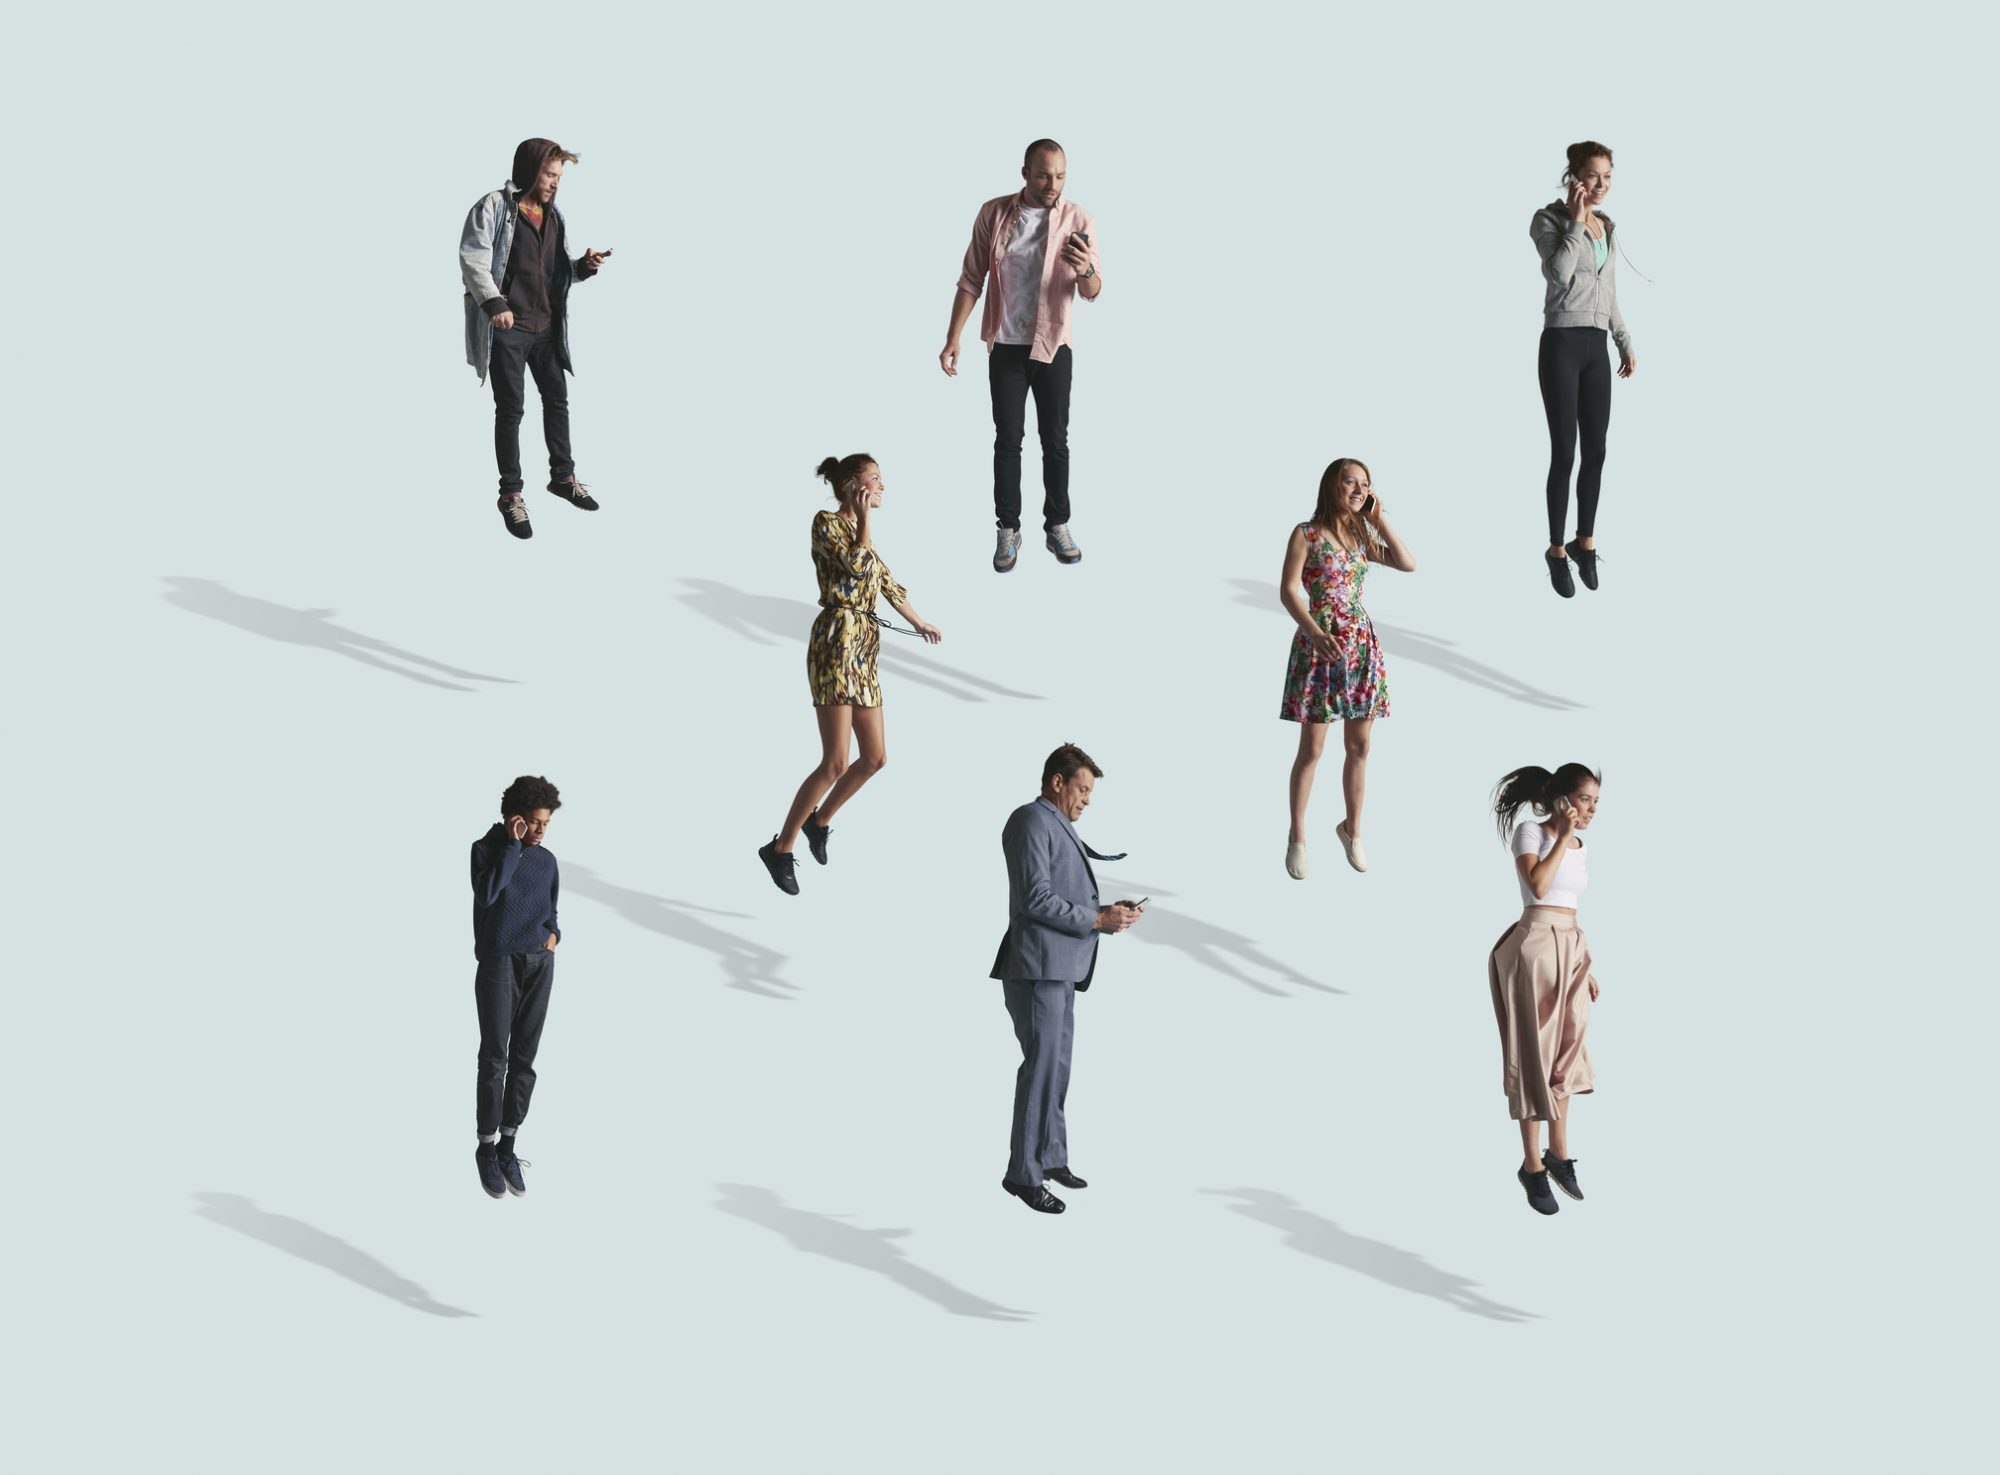 Group of people using phone while jumping